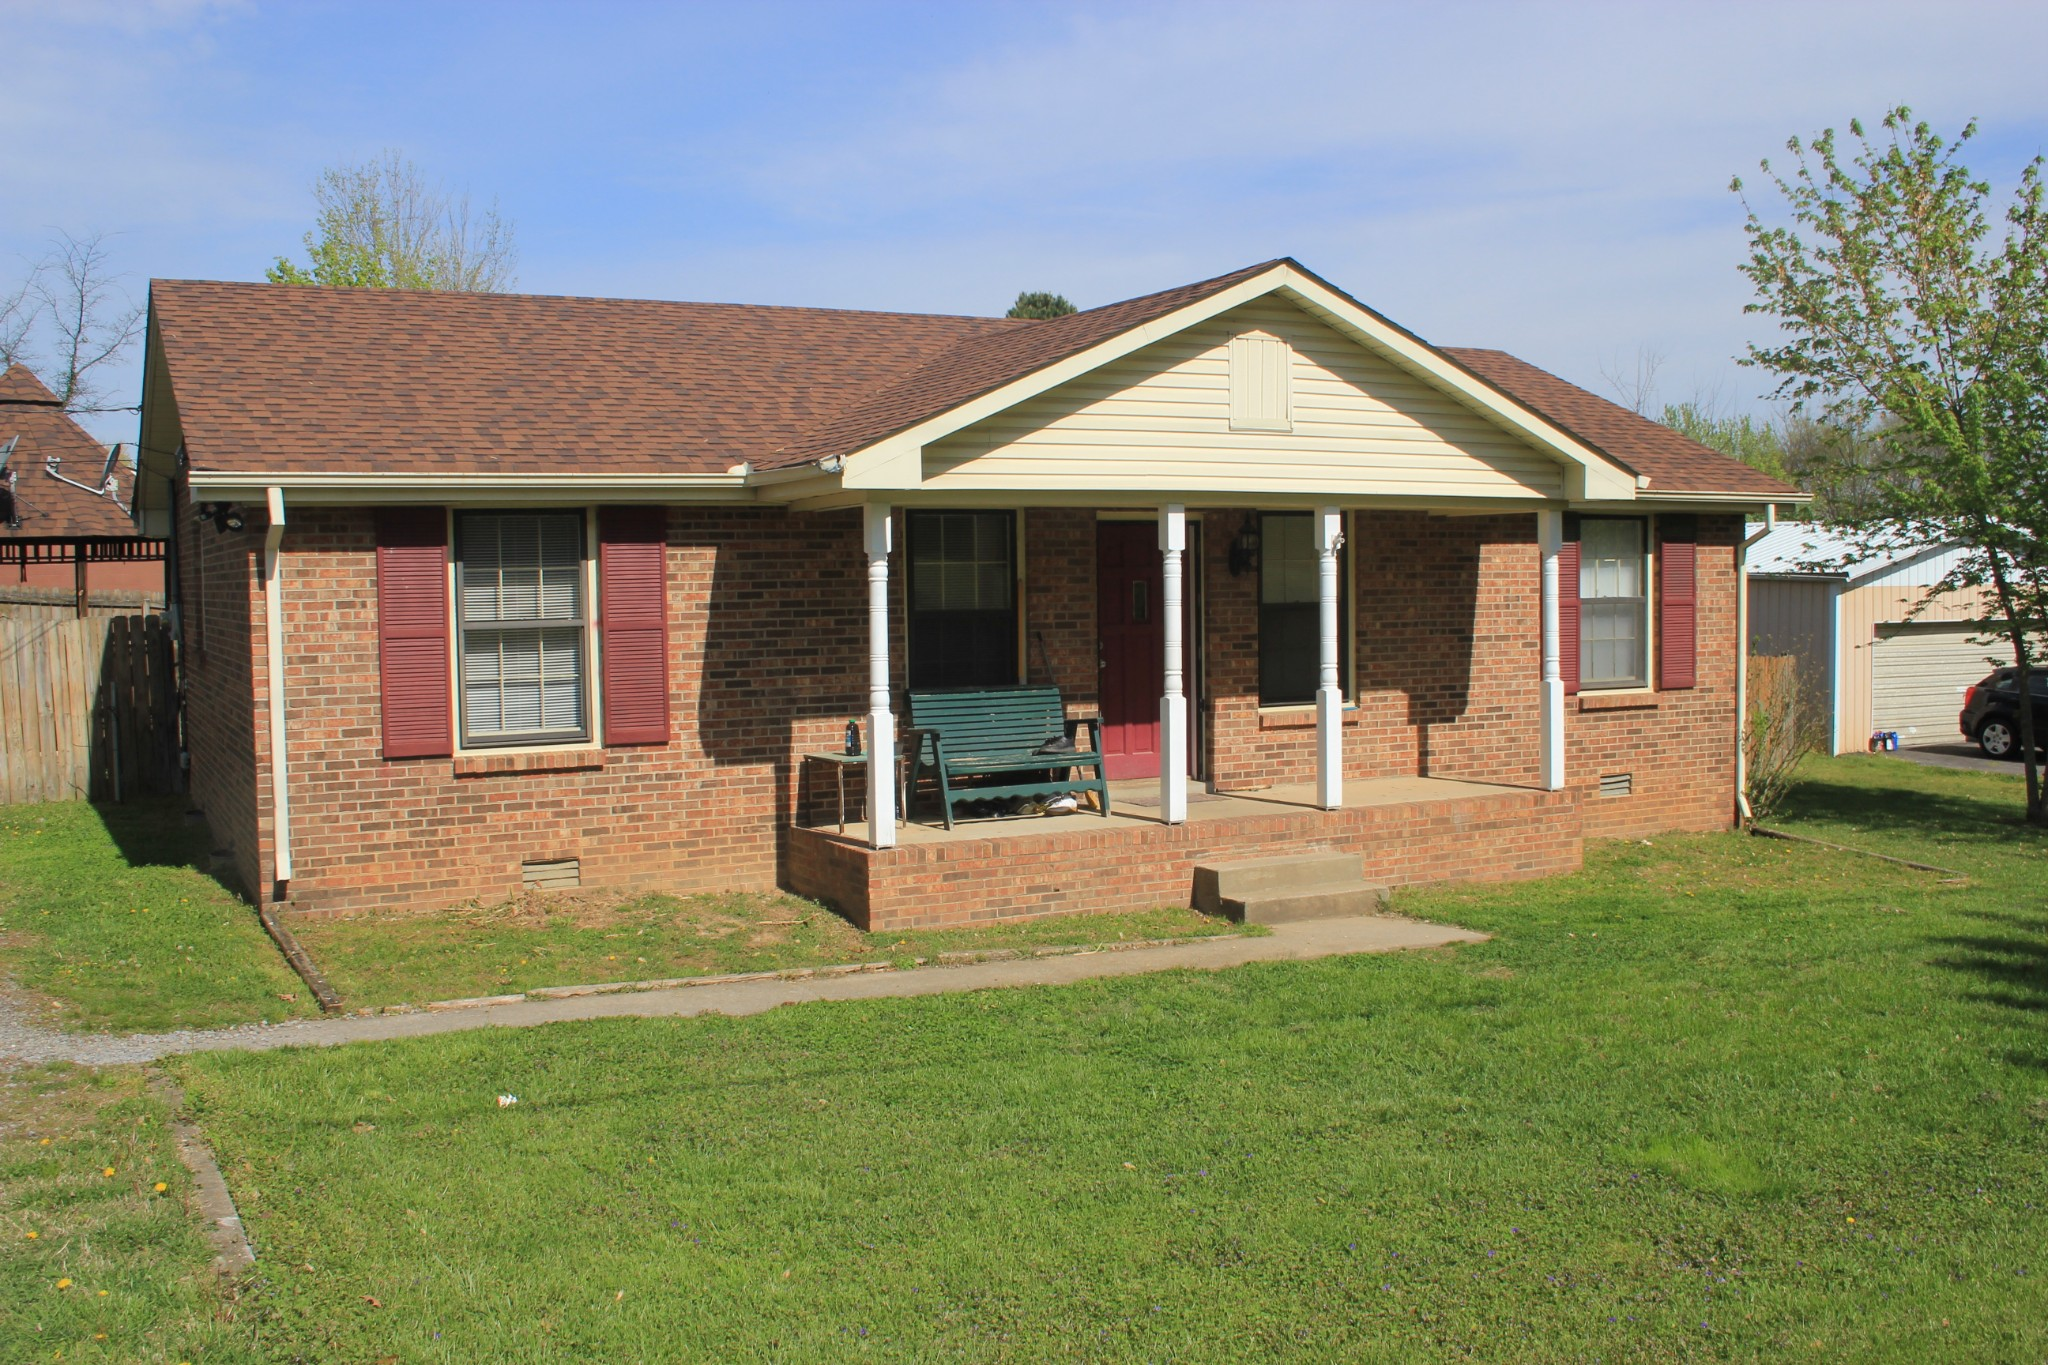 302 E Hillcrest Dr Property Photo - Springfield, TN real estate listing